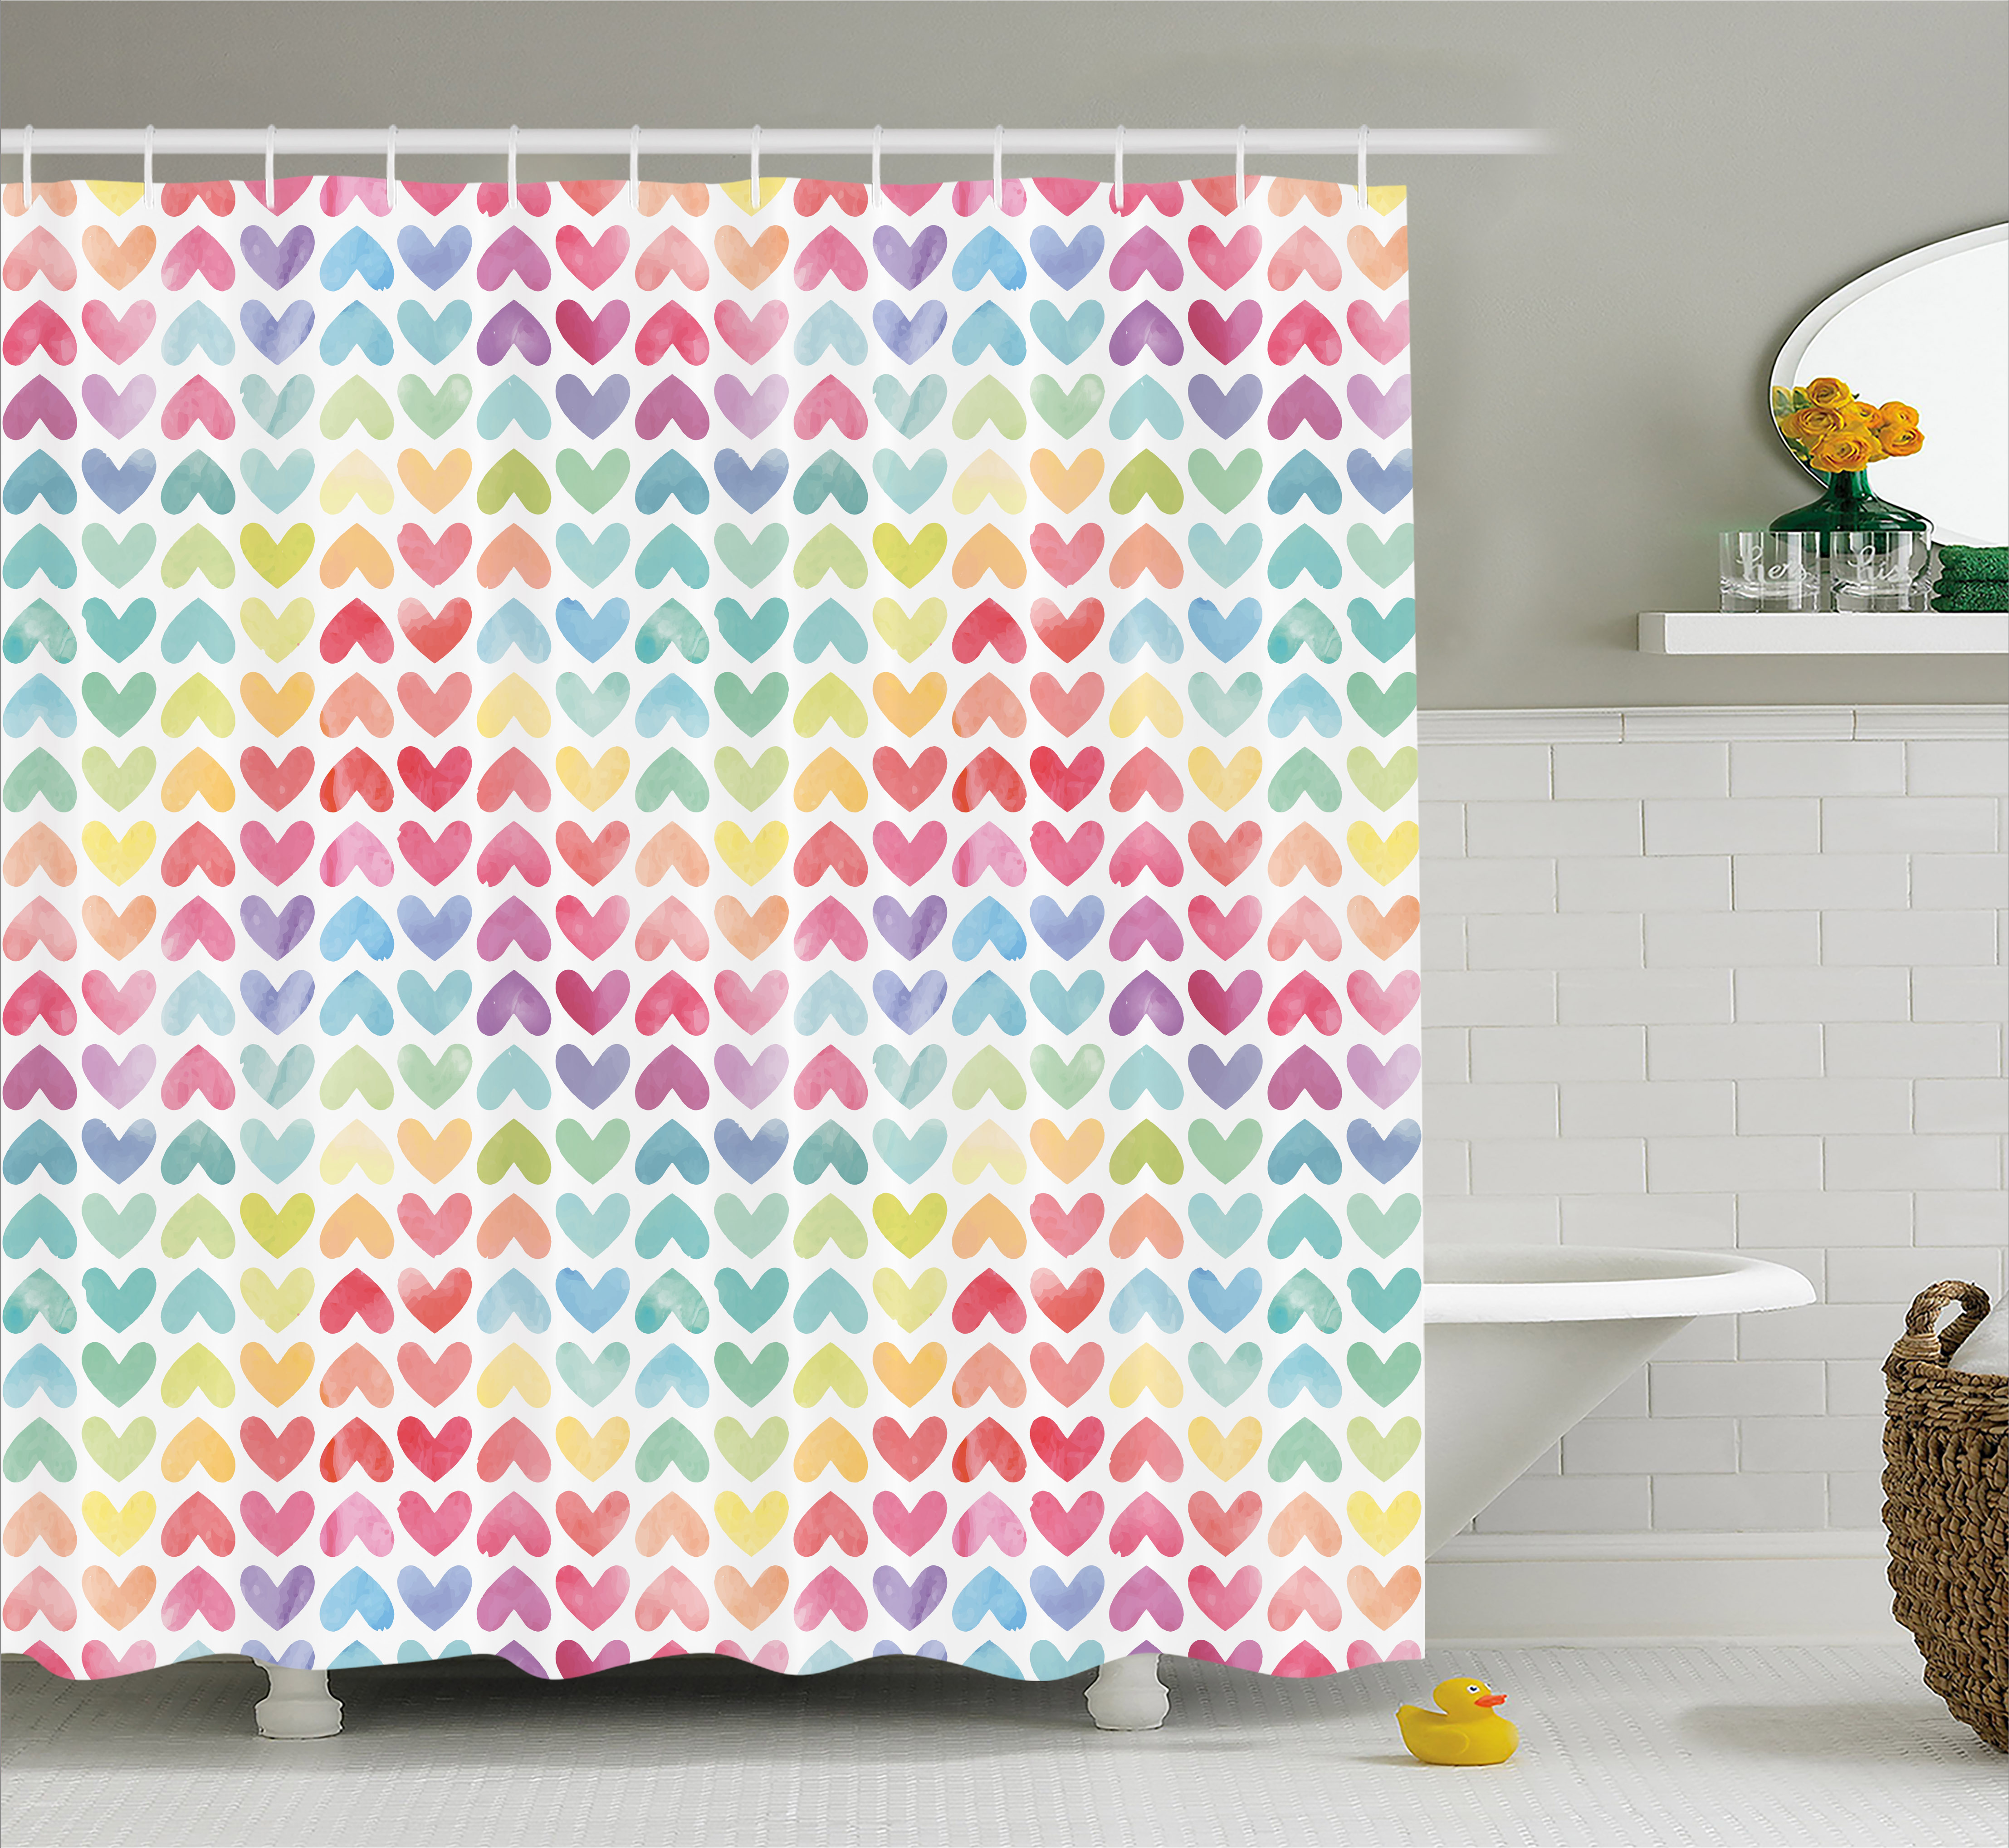 Watercolor Shower Curtain, Valentine's Day Theme Colorful Cute Little Hearts Vibrant Paintbrush Effect, Fabric Bathroom Set with Hooks, 69W X 70L Inches, Multicolor, by Ambesonne